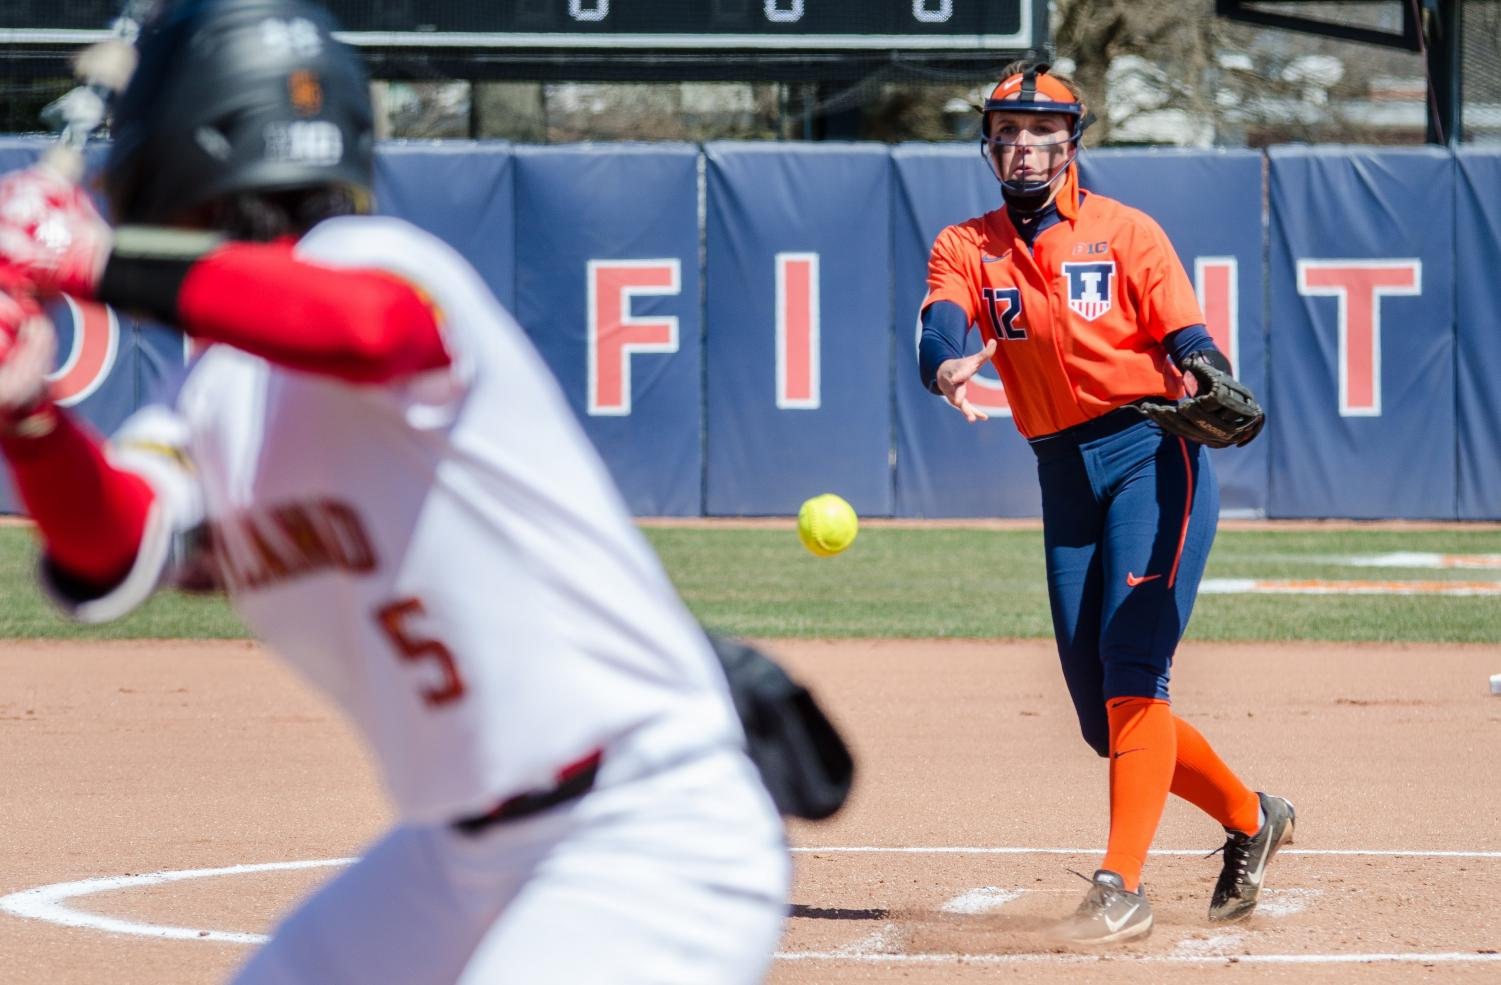 Taylor Ewards throws a pitch during Illinois' home game against Maryland on Saturday.